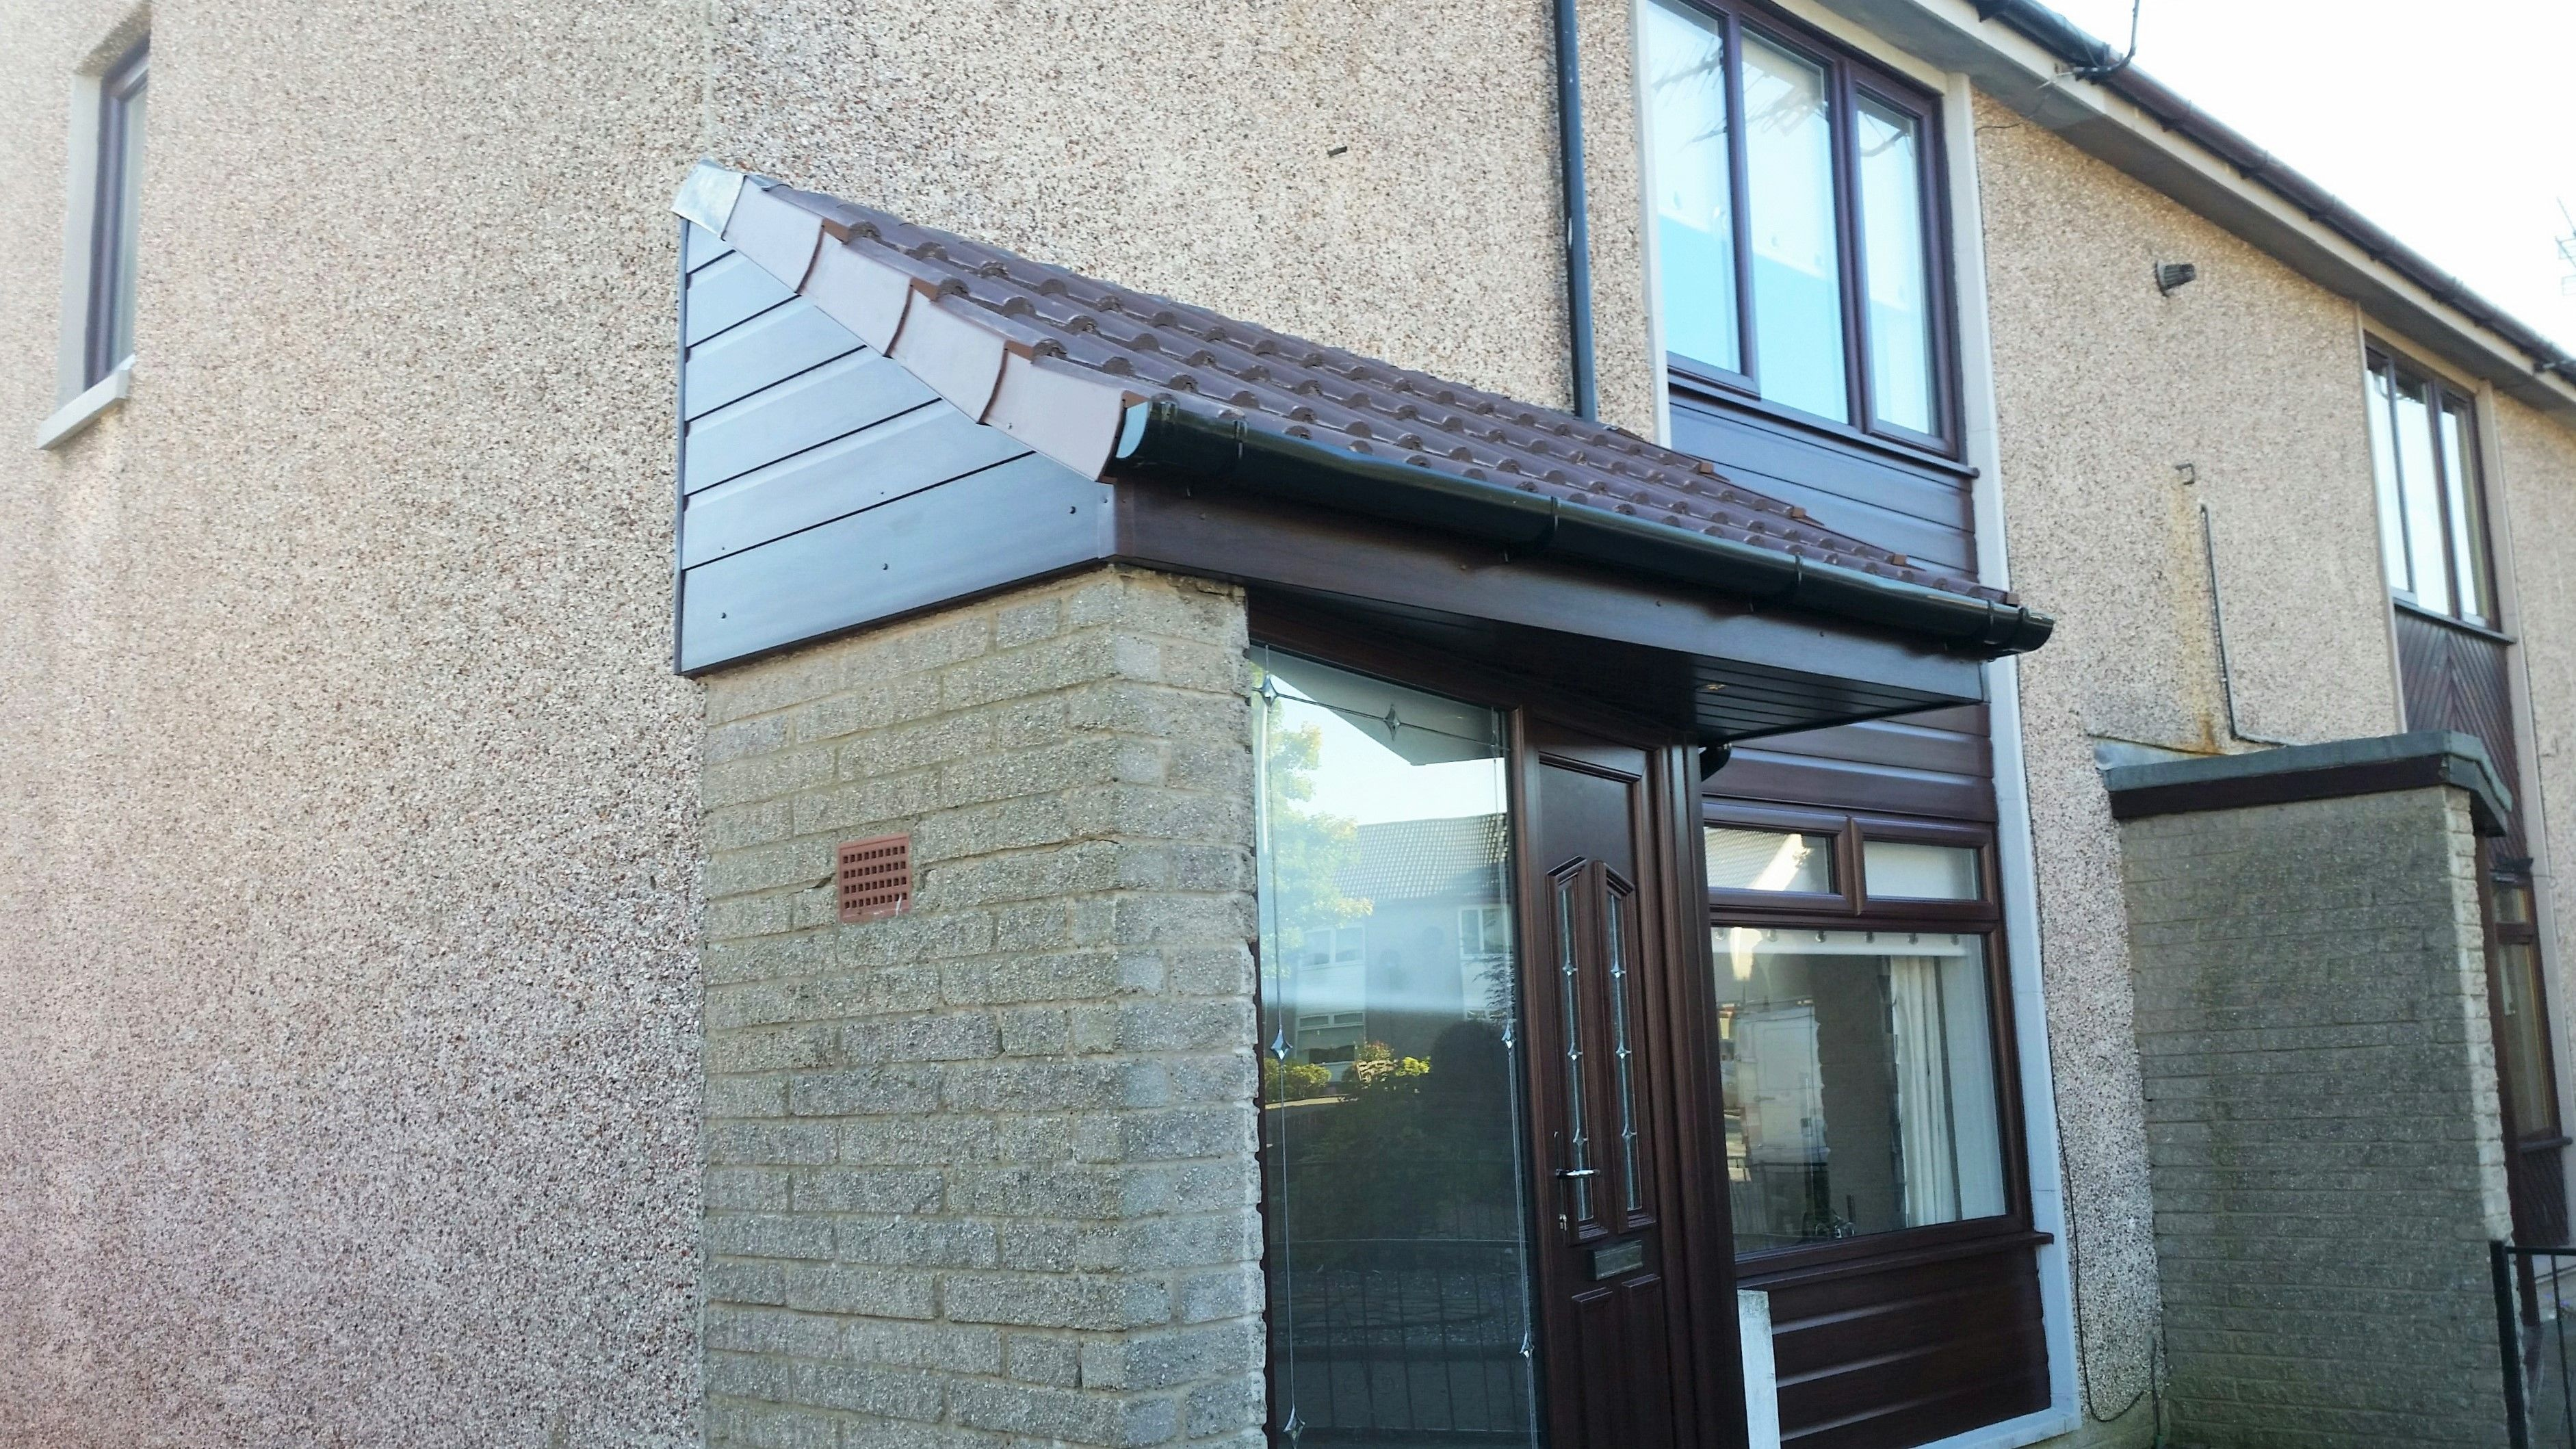 Centiam Home Improvements Windows Doors Raised Roof and Roofline cladding in Rosewood installation Falkirk. & Centiam Home Improvements Windows Doors Raised Roof and Roofline ...